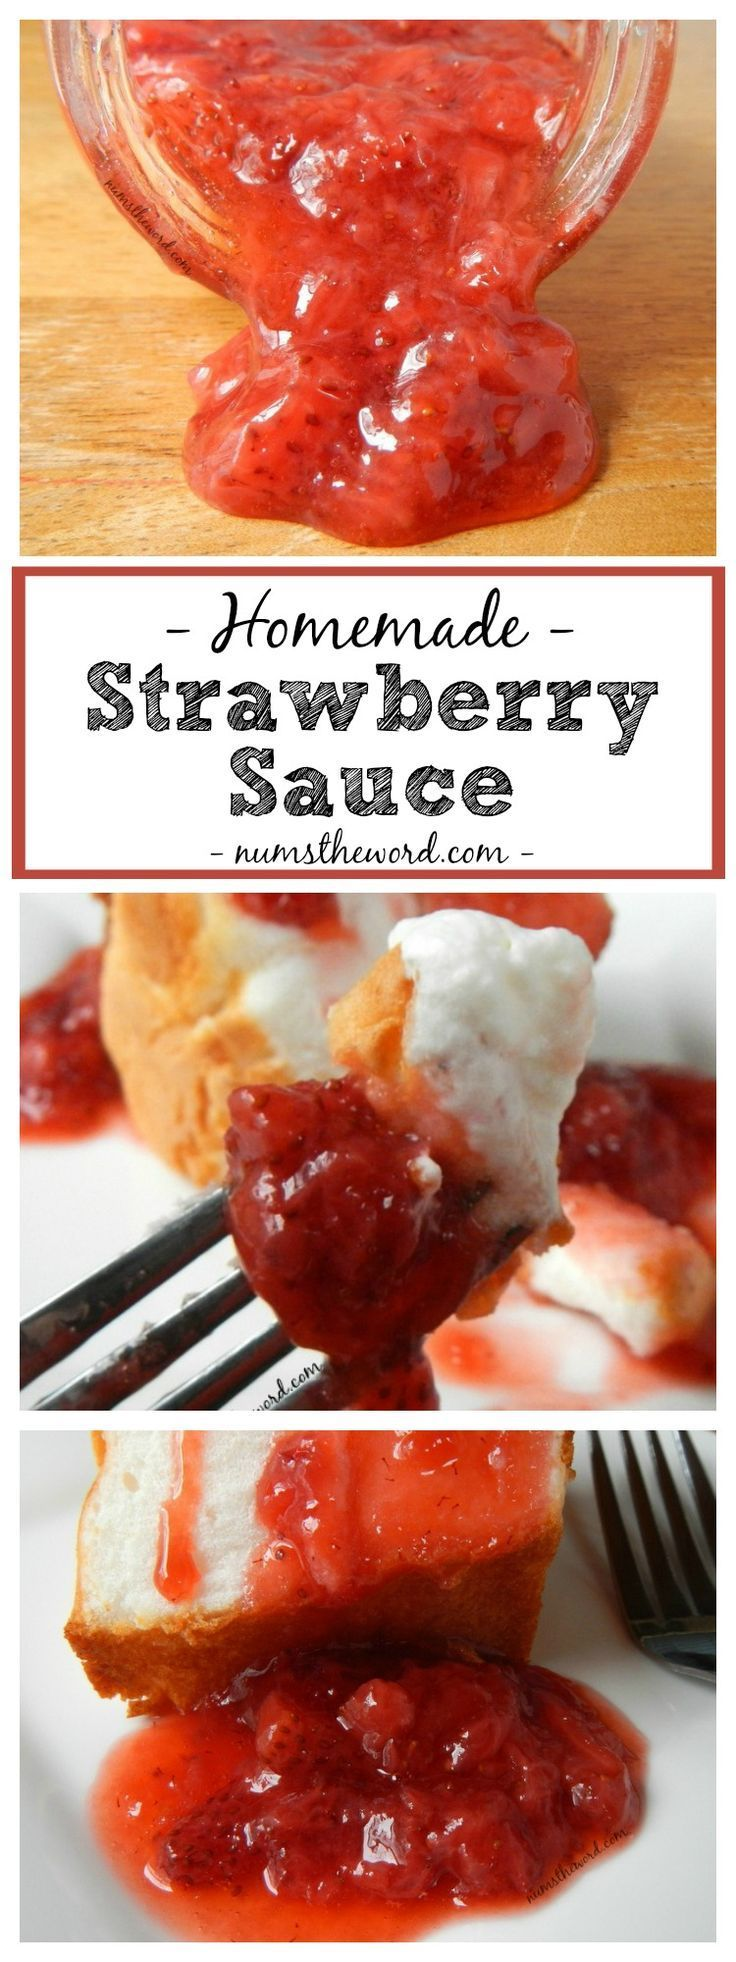 This homemade strawberry sauce is as easy as they come. Simple, delicious and perfect on just about anything! Certainly a favorite in our house!